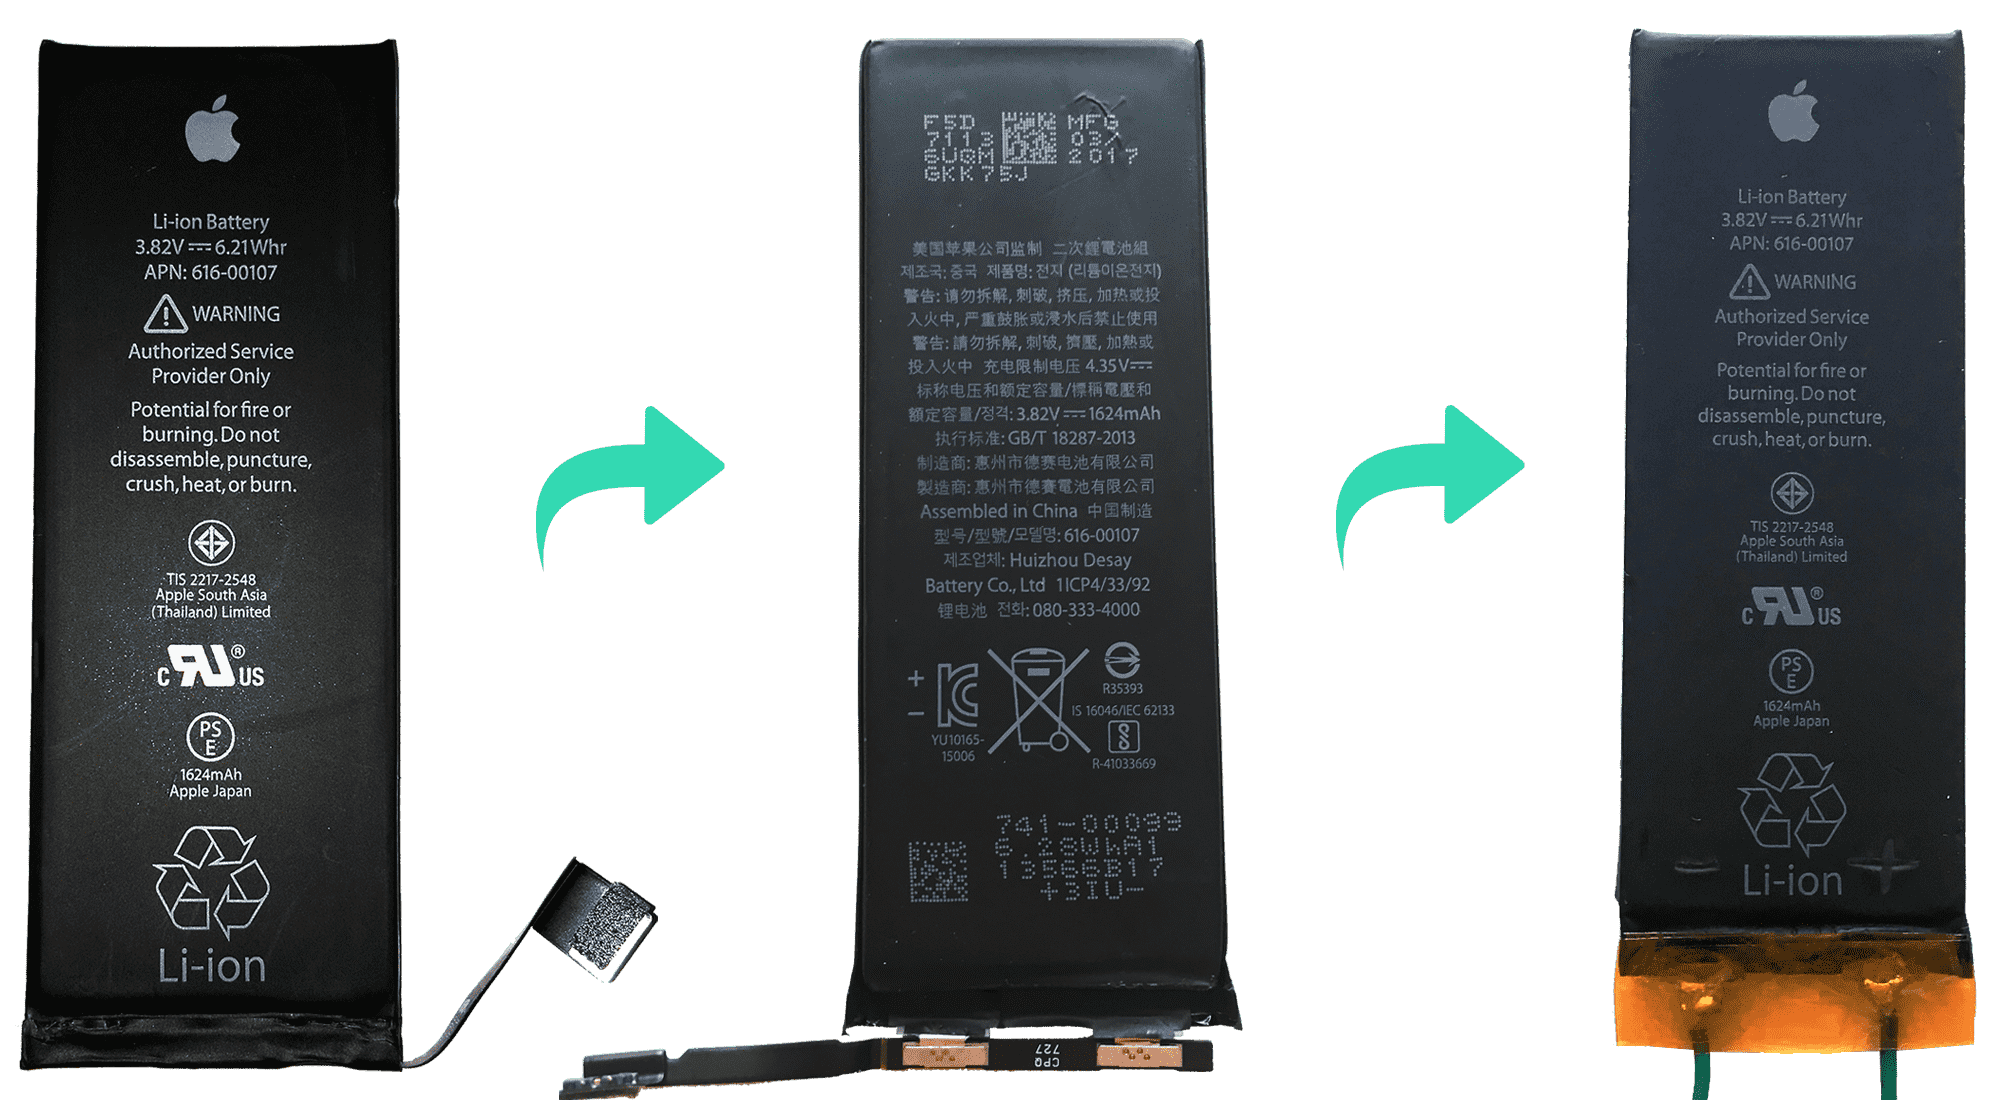 Reusing and old iPhone battery